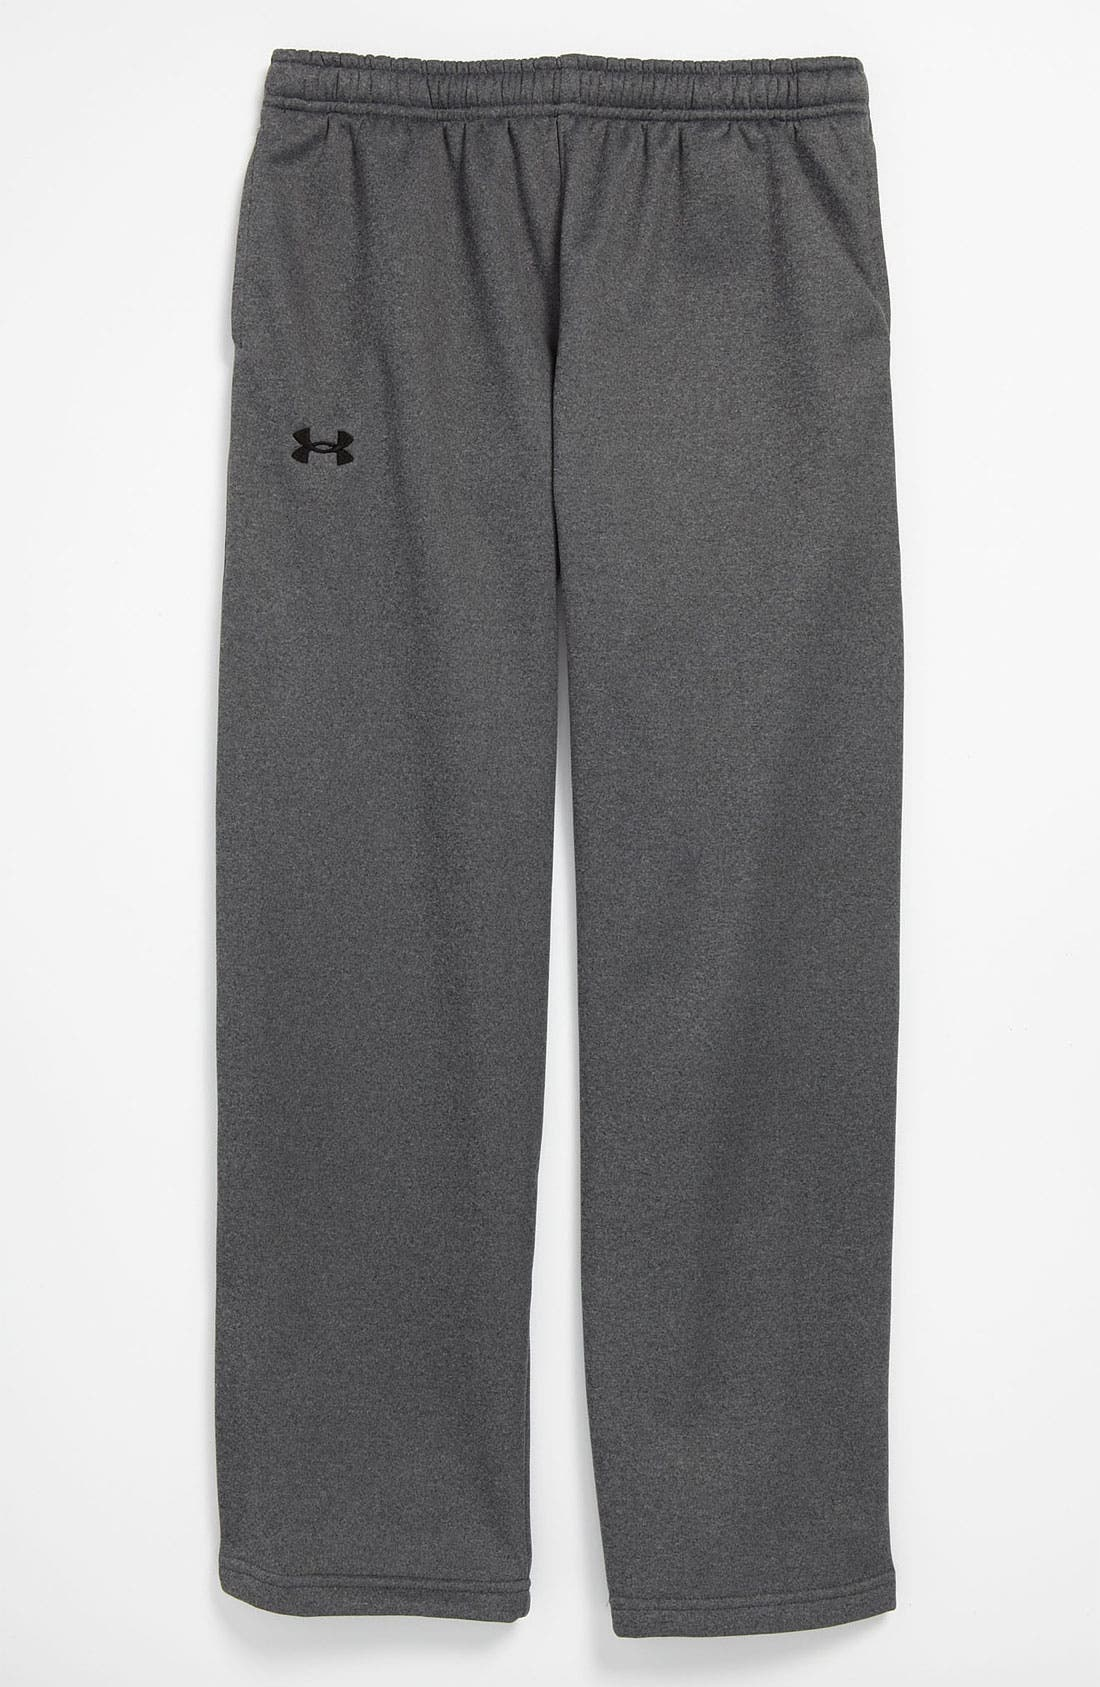 Alternate Image 1 Selected - Under Armour 'Storm' Pants (Big Boys)